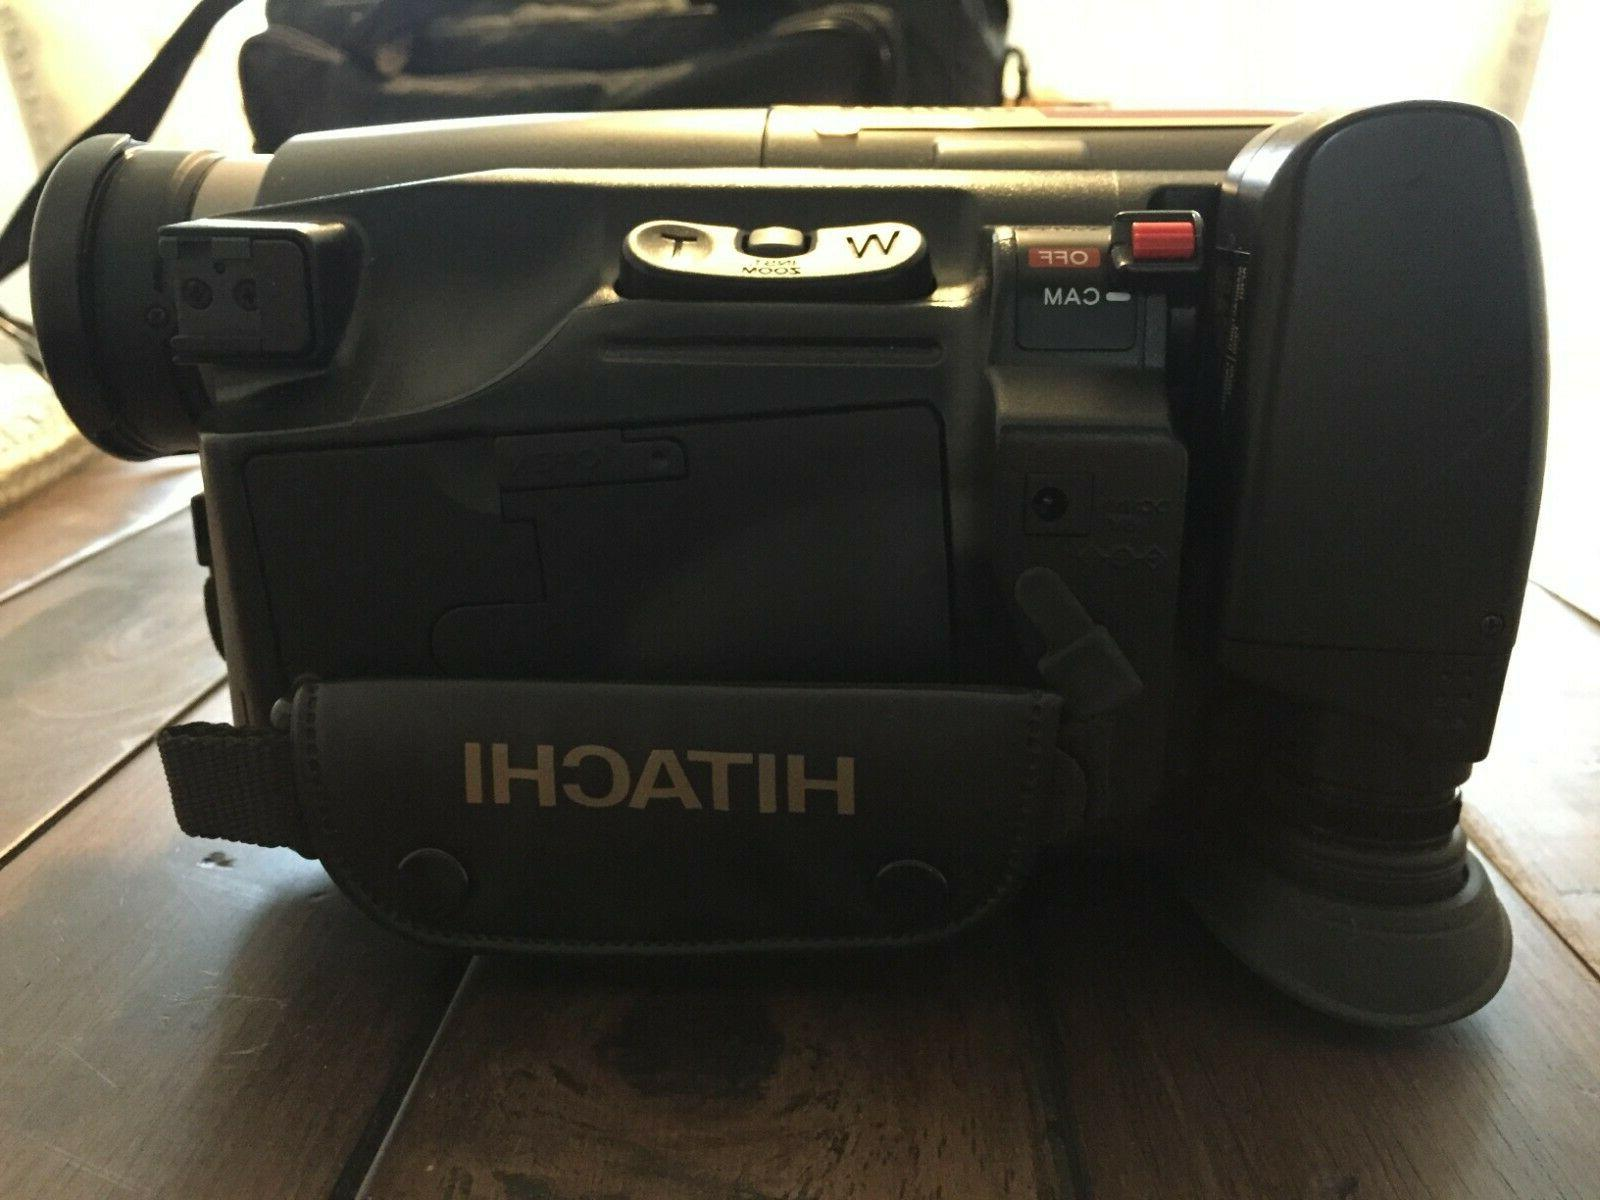 Hitachi 8mm Camcorder Charger, TESTED